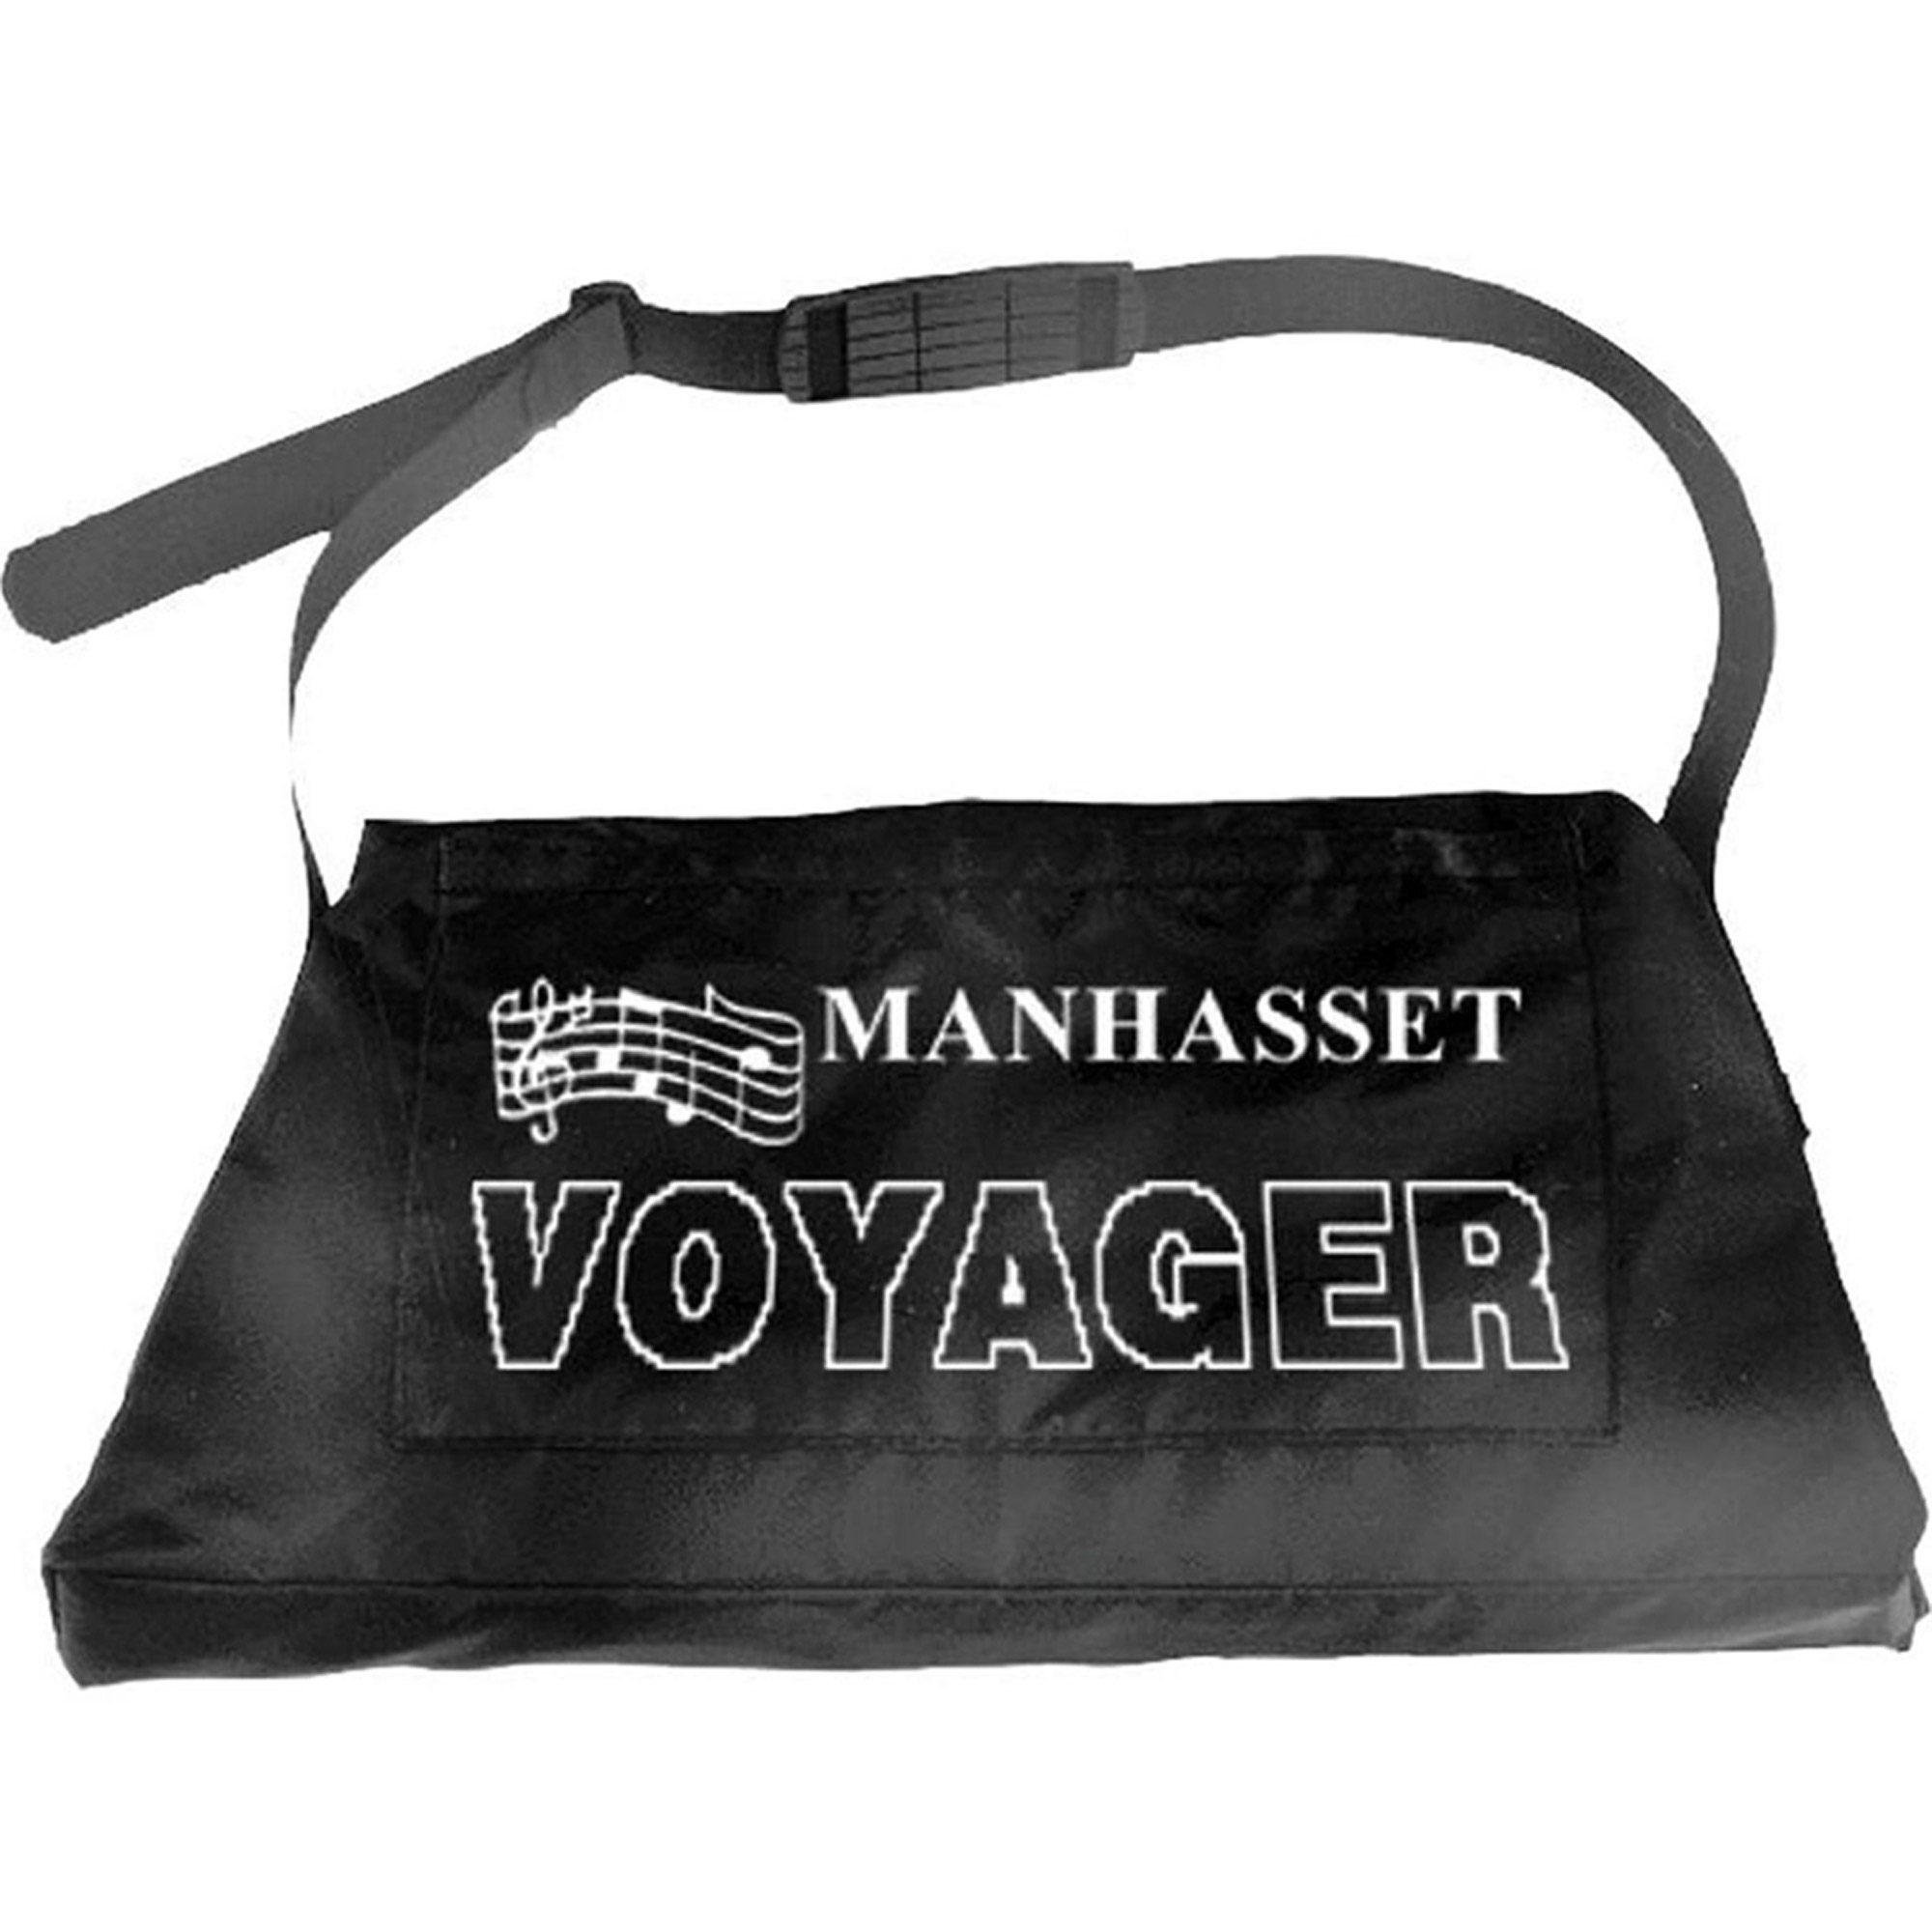 Manhasset #1800 Voyager Tote Bag for Voyager Music Stand by Manhasset